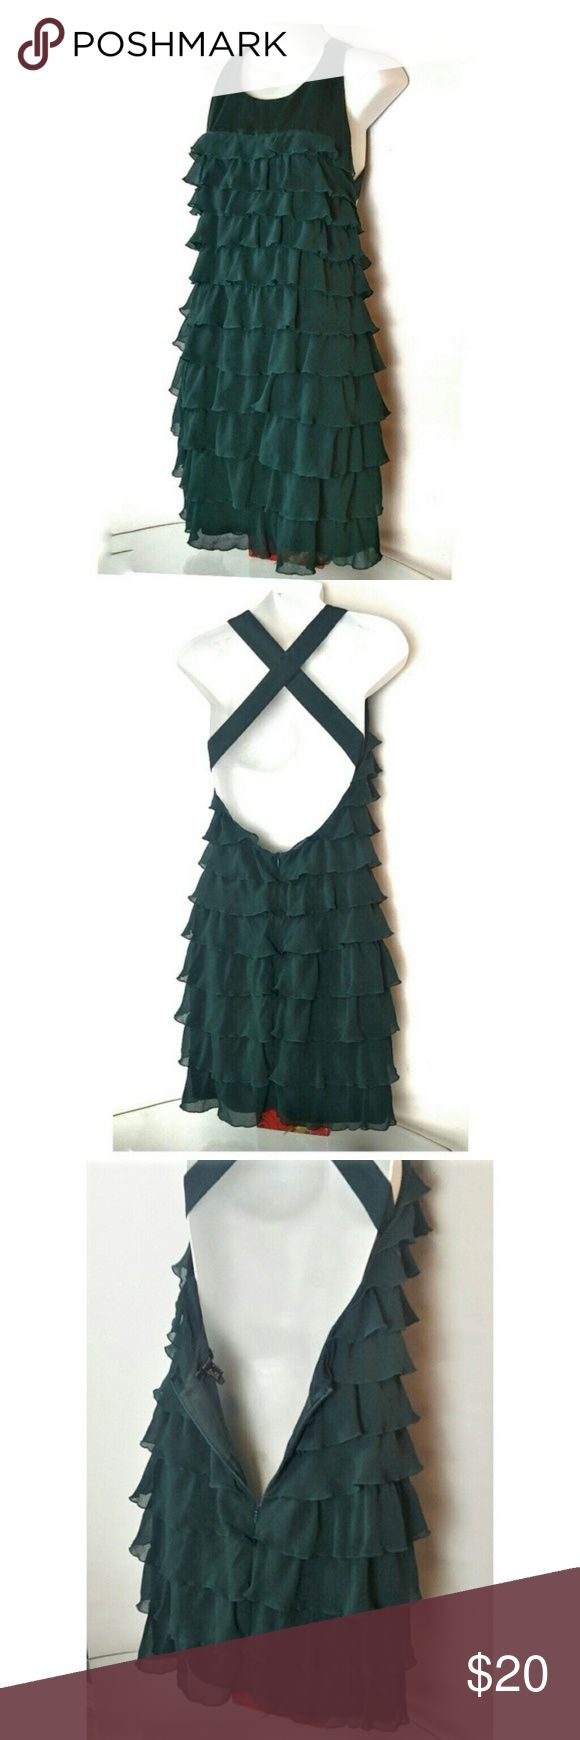 """GREEN Cocktail Ruffle open back Dress Small Mango Suit Collection Cocktail Ruffle open back Dress sz. Marked as 6, but really Small (2) APPROXIMATE MEASUREMENTS: LENGTH 36-37"""" BUST 15"""" measured across  HIPS 17"""" measured across  GOOD PRE-OWNED CONDITION  PETS AND SMOKE FREE HOUSE  WILL SHIP WITHIN 24 HOURS FROM CLEARED PAYMENT Mango Dresses"""